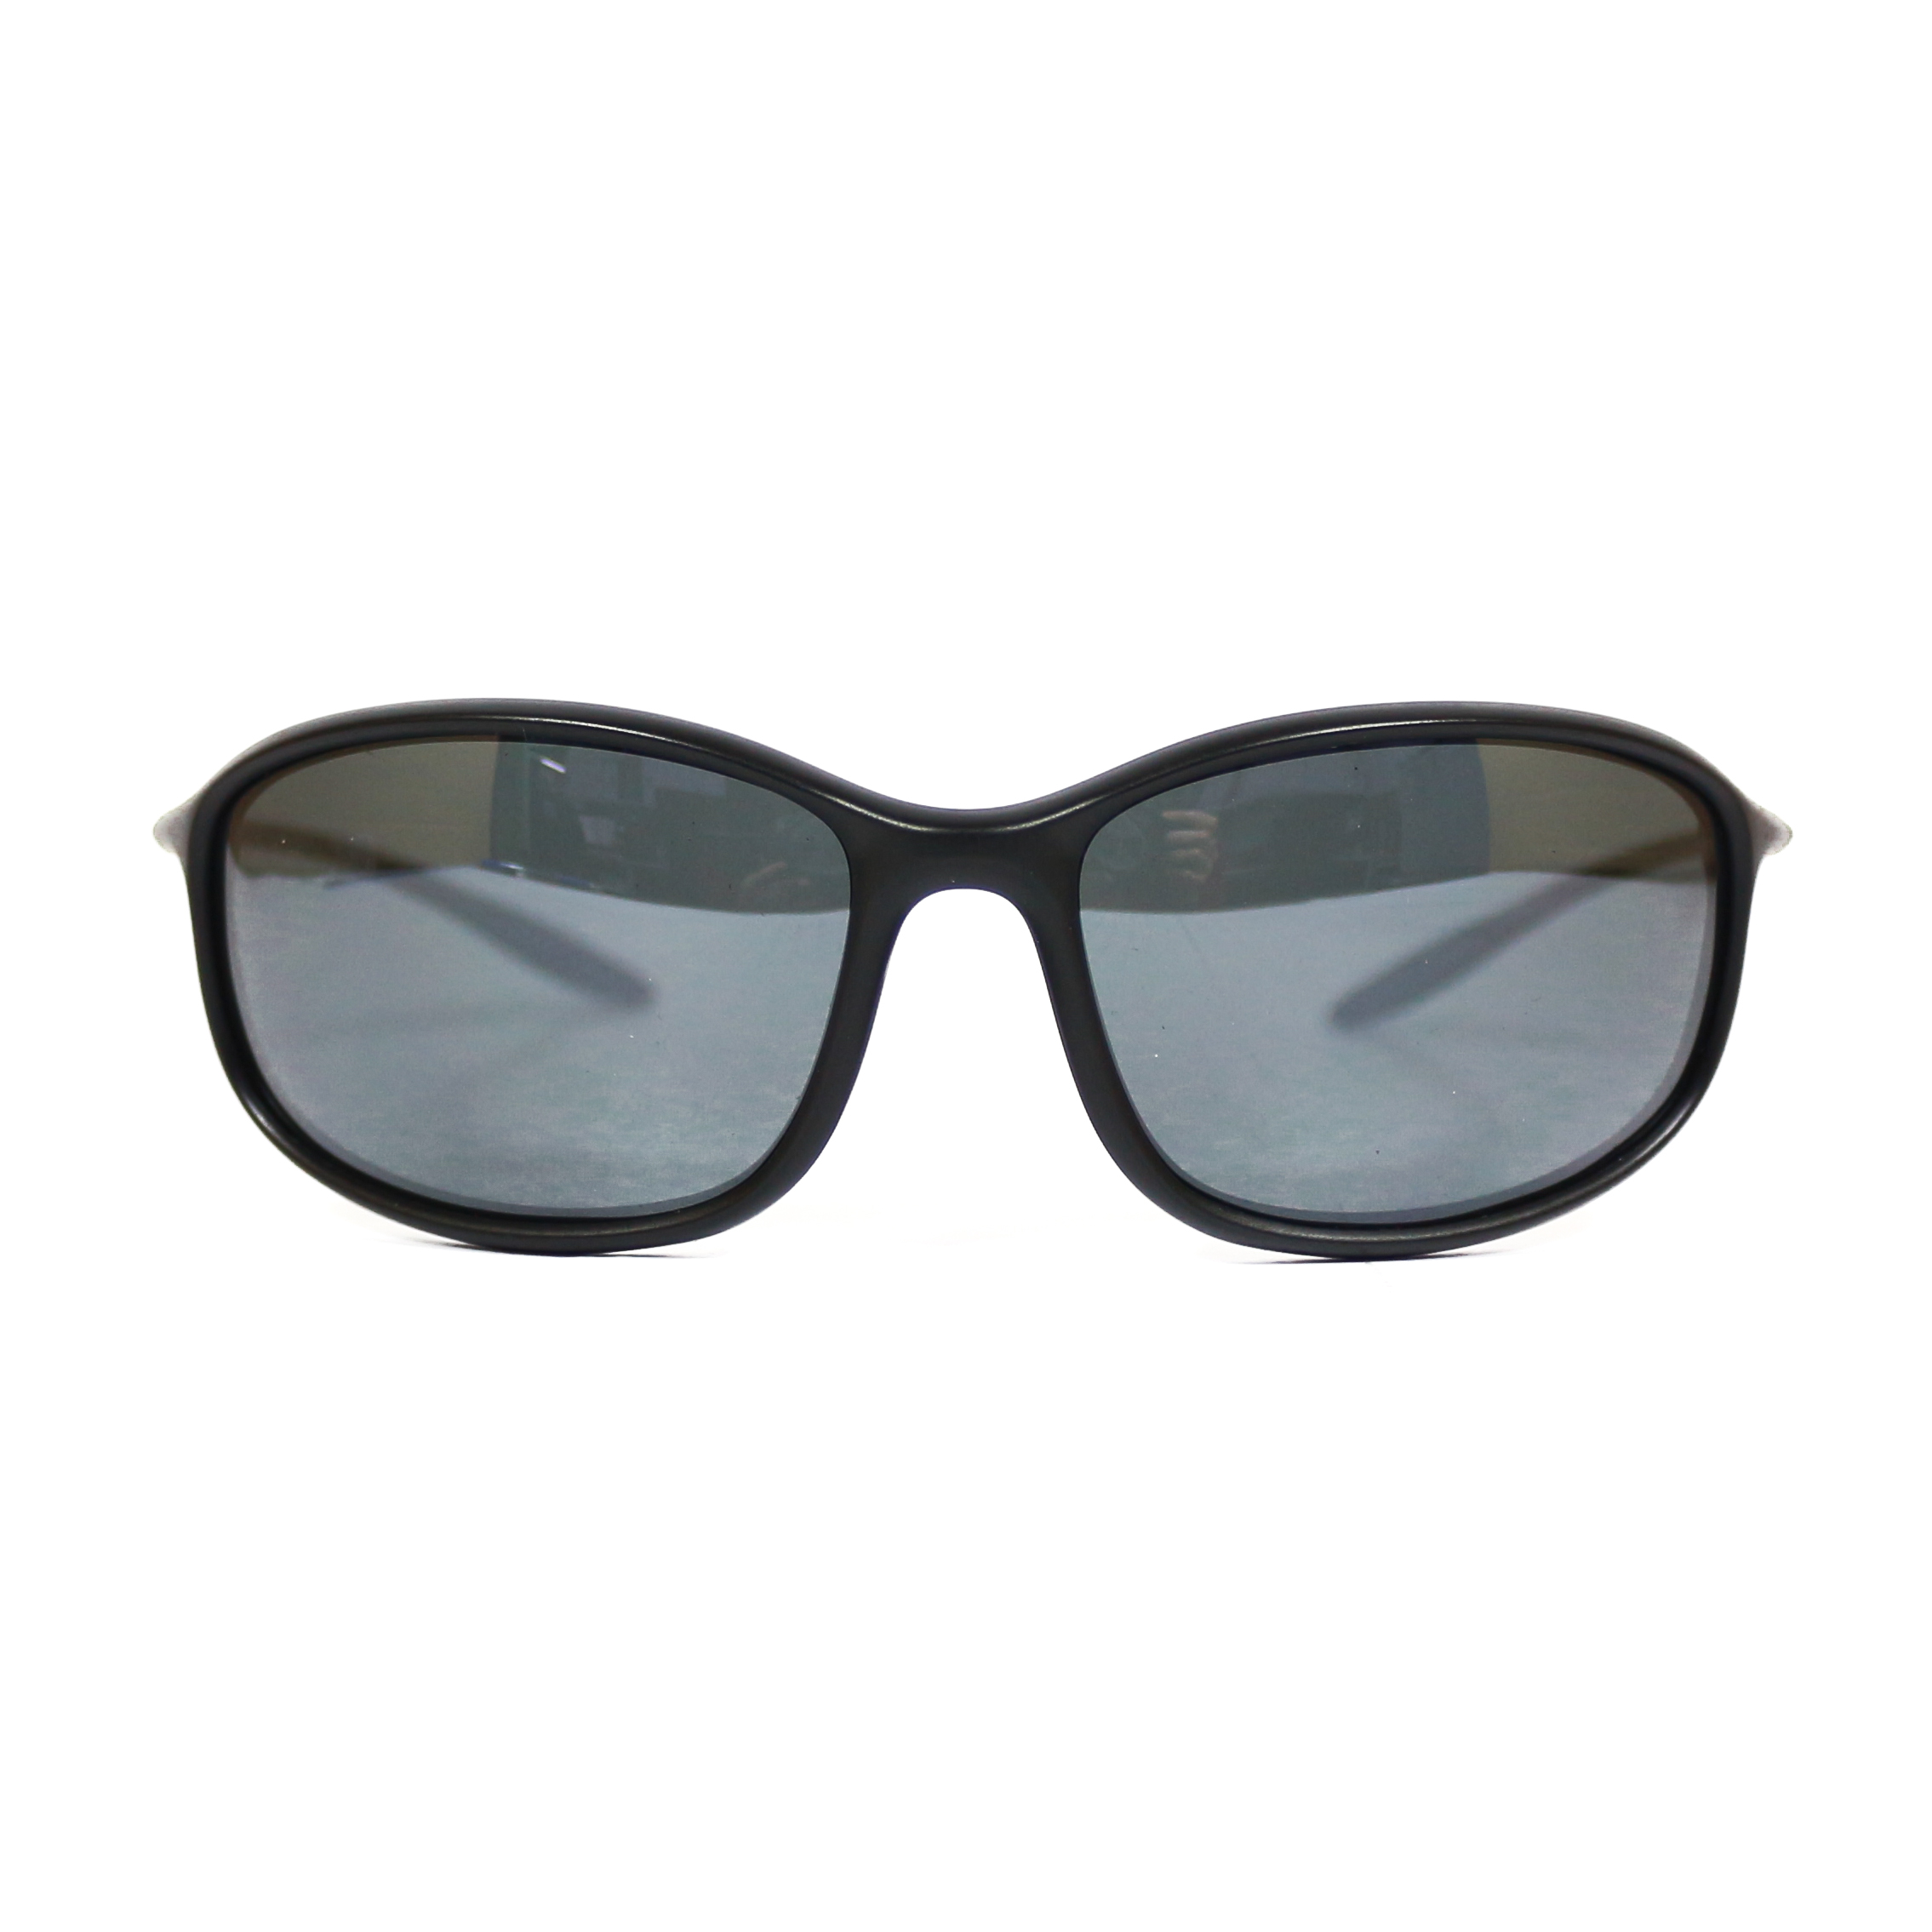 LSD Sunglasses Polarized Ultra Light Mat Blk / Silver Mirror (6872)